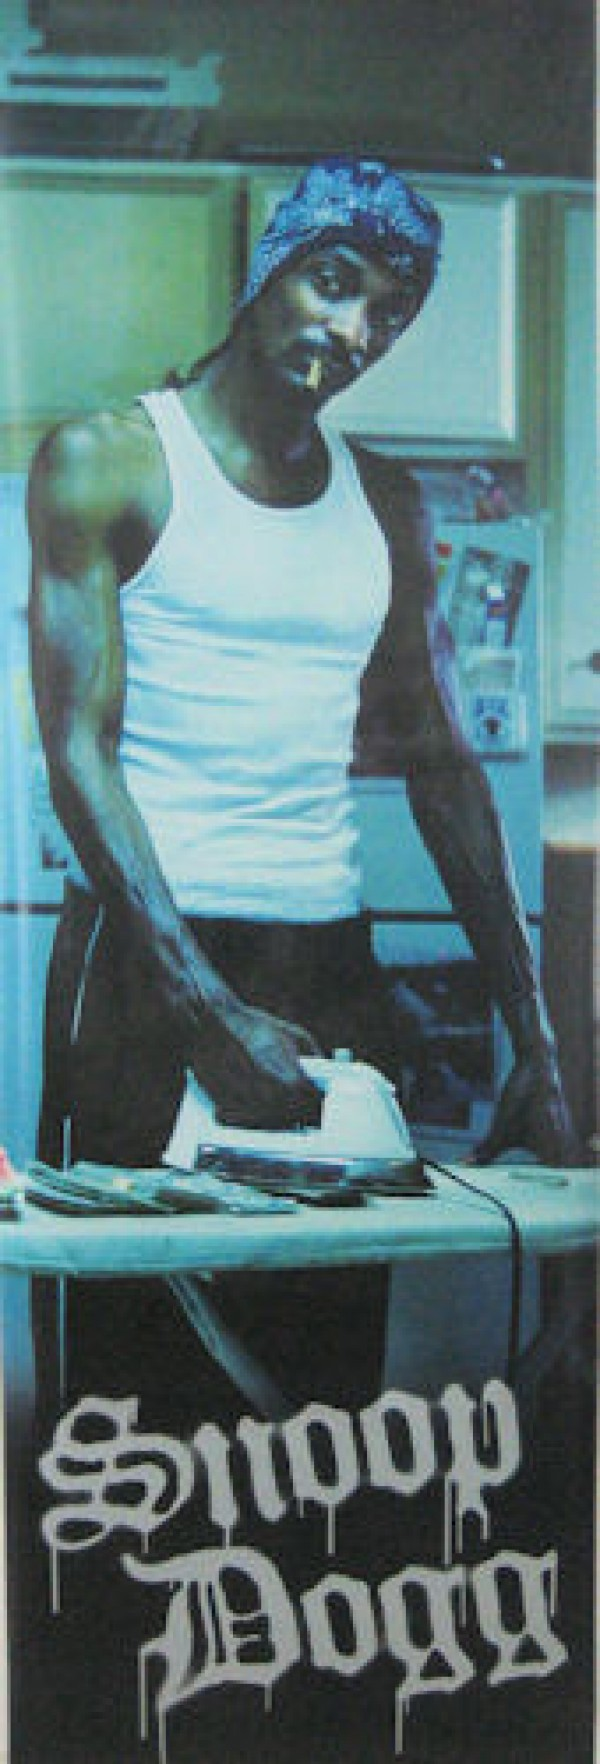 Snoop Dogg Ironing Door Poster